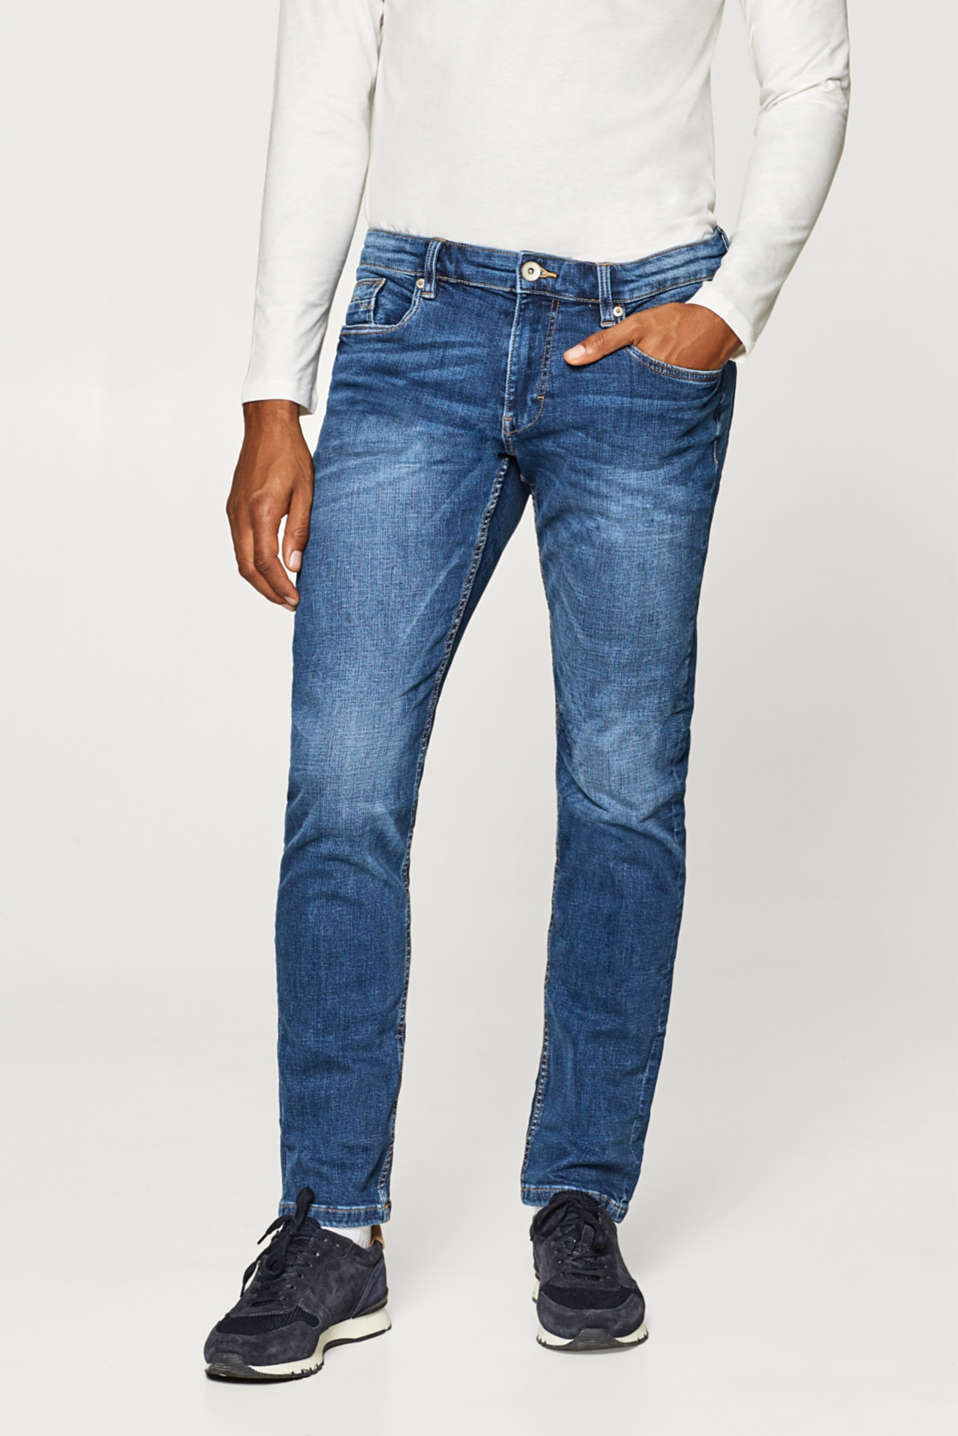 Esprit - Lightweight stretch jeans in a timeless vintage wash